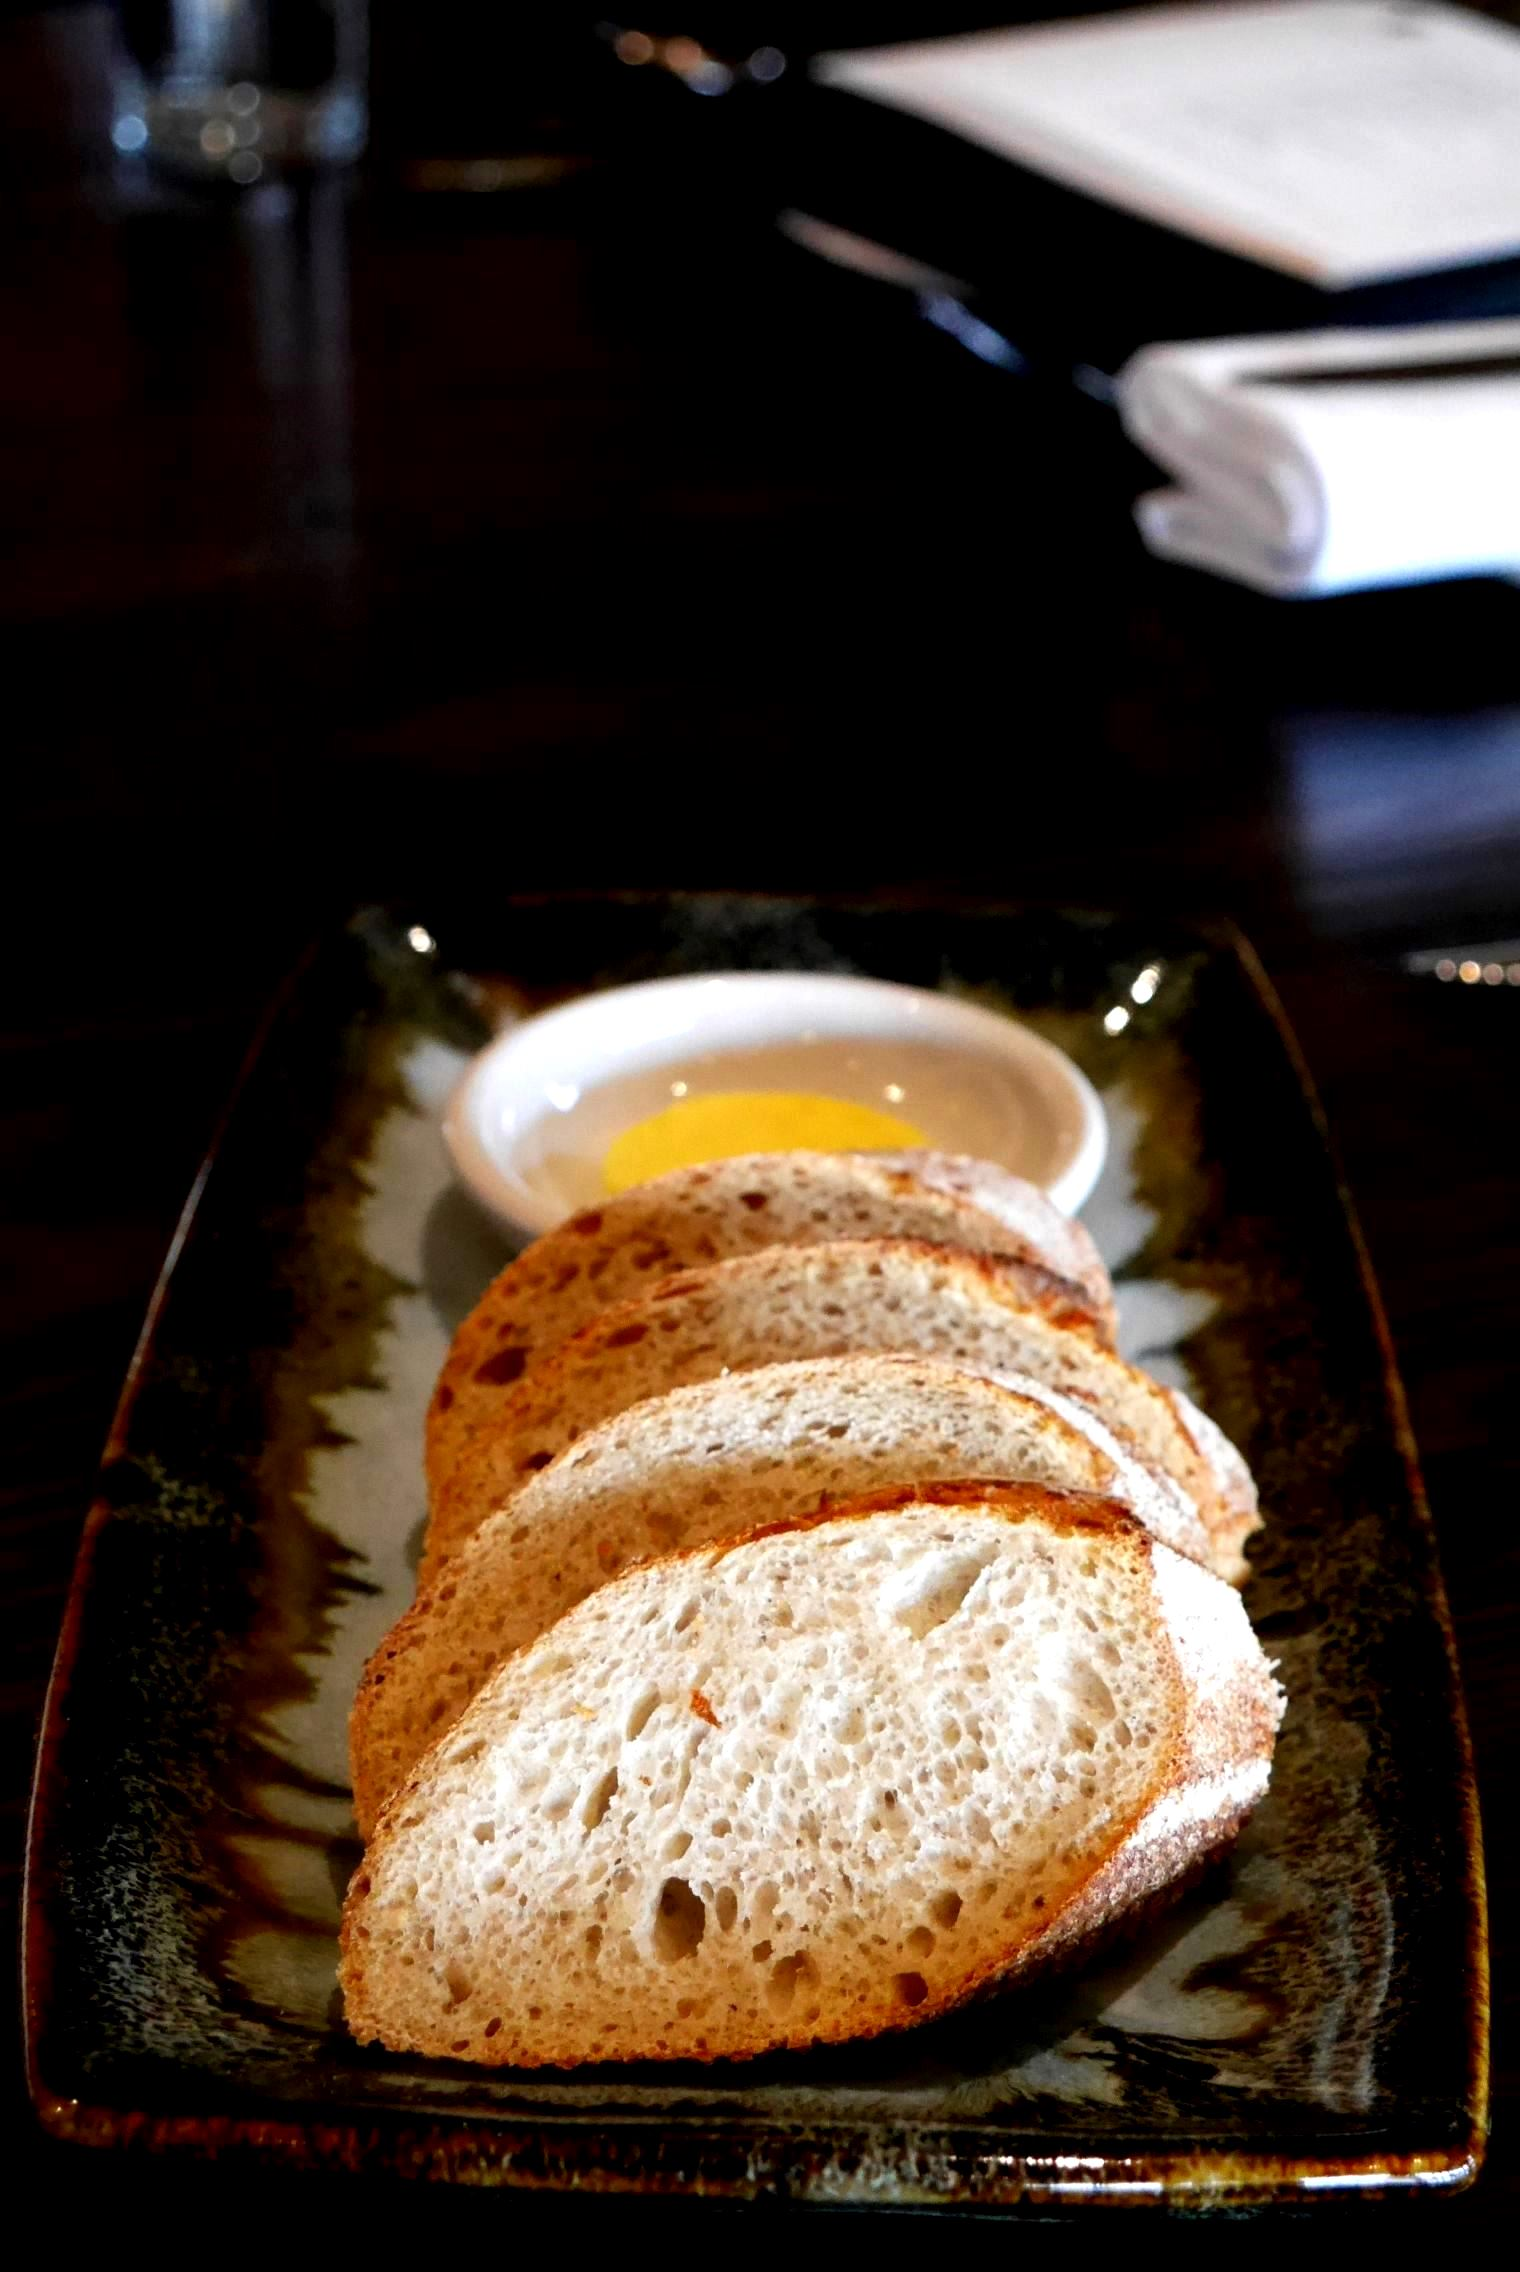 Sourdough and olive oil